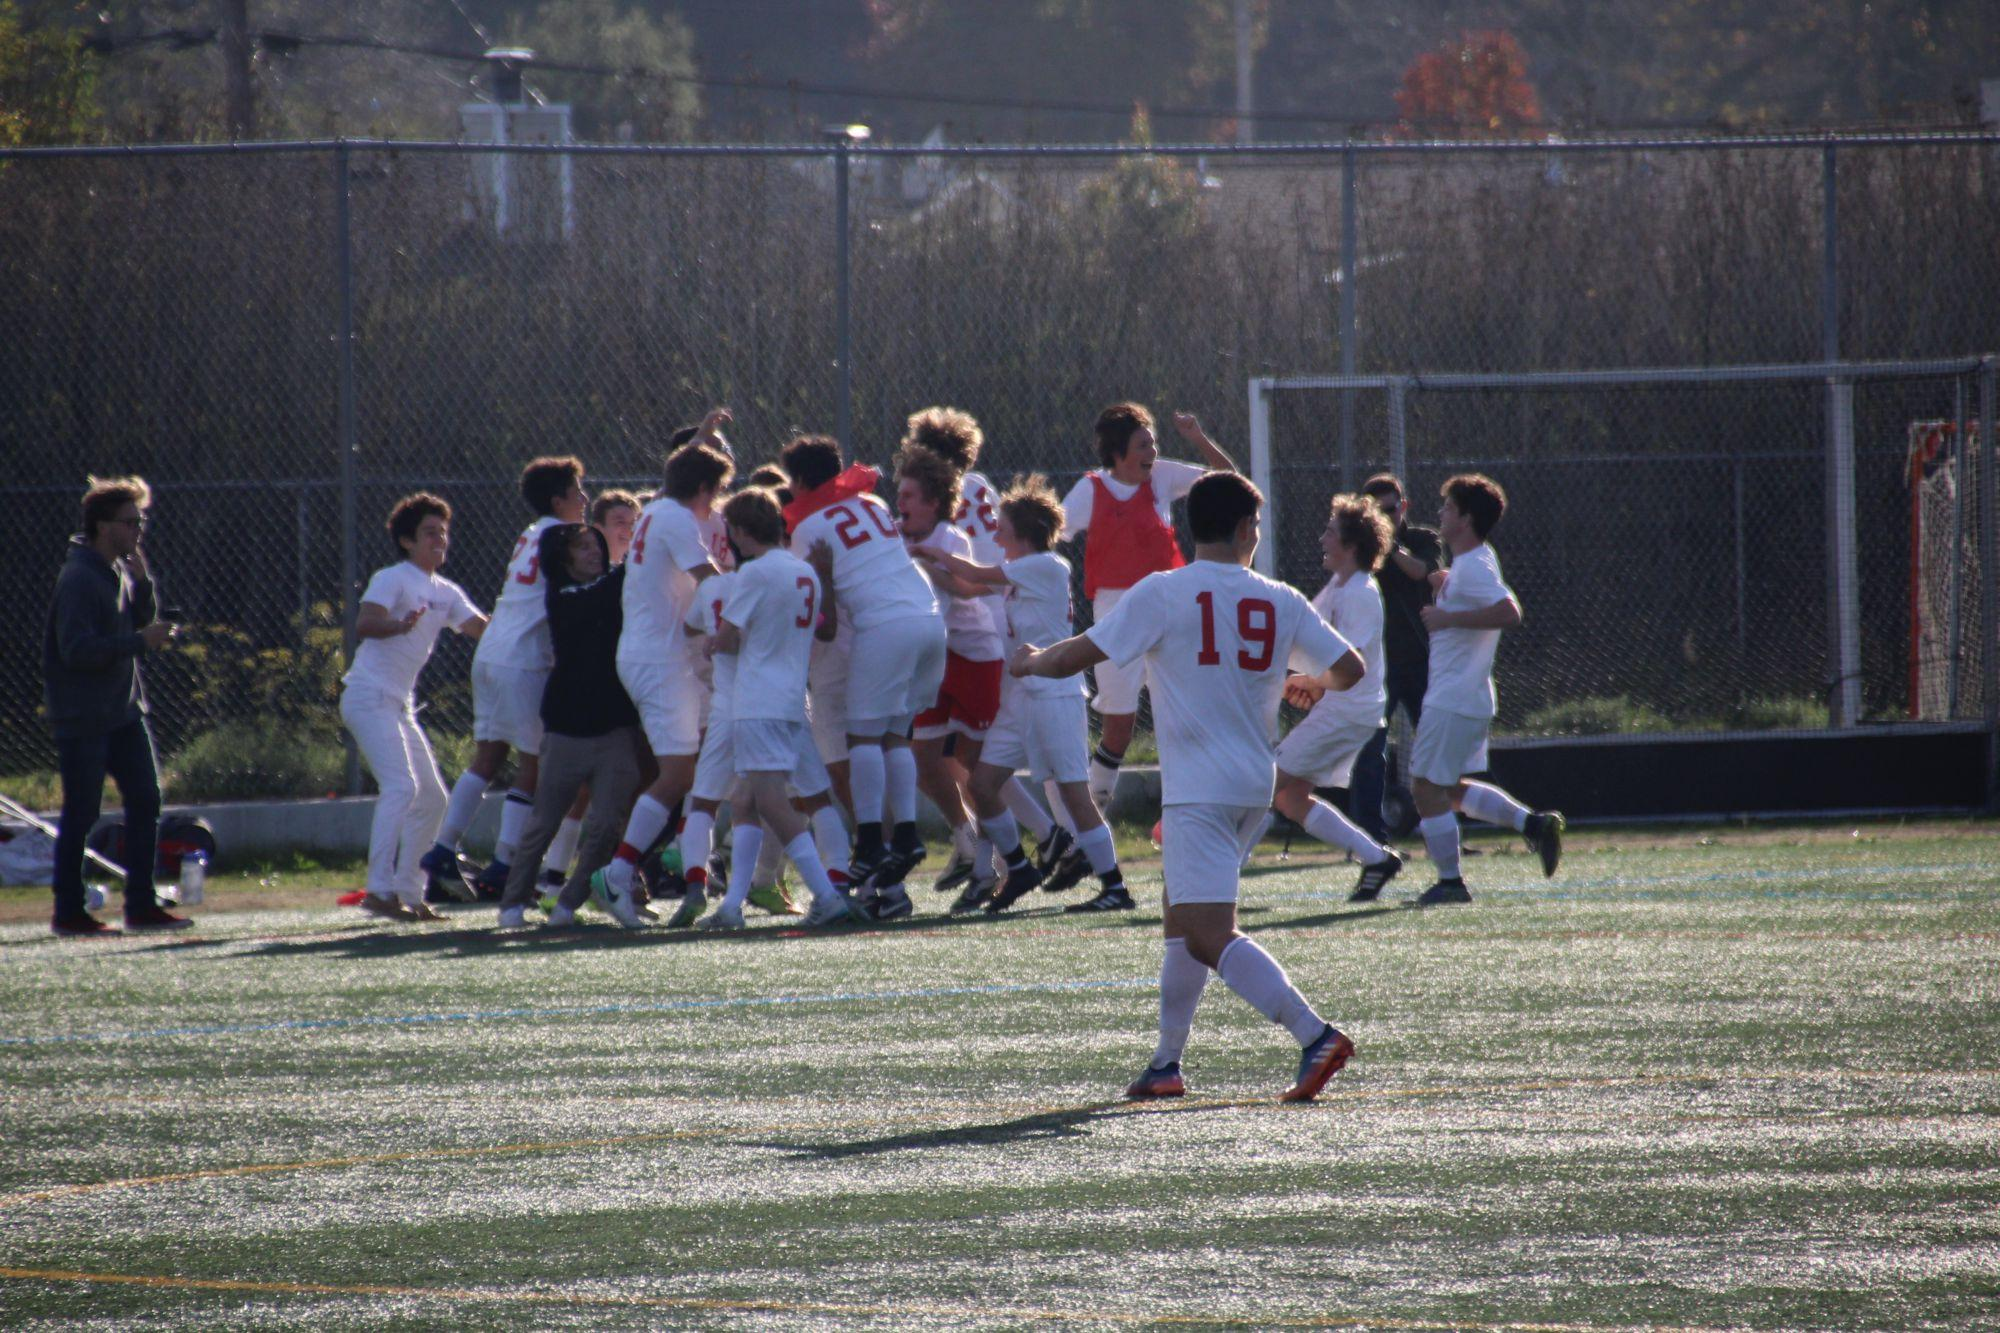 The team celebrating after Rogans goal on a free kick